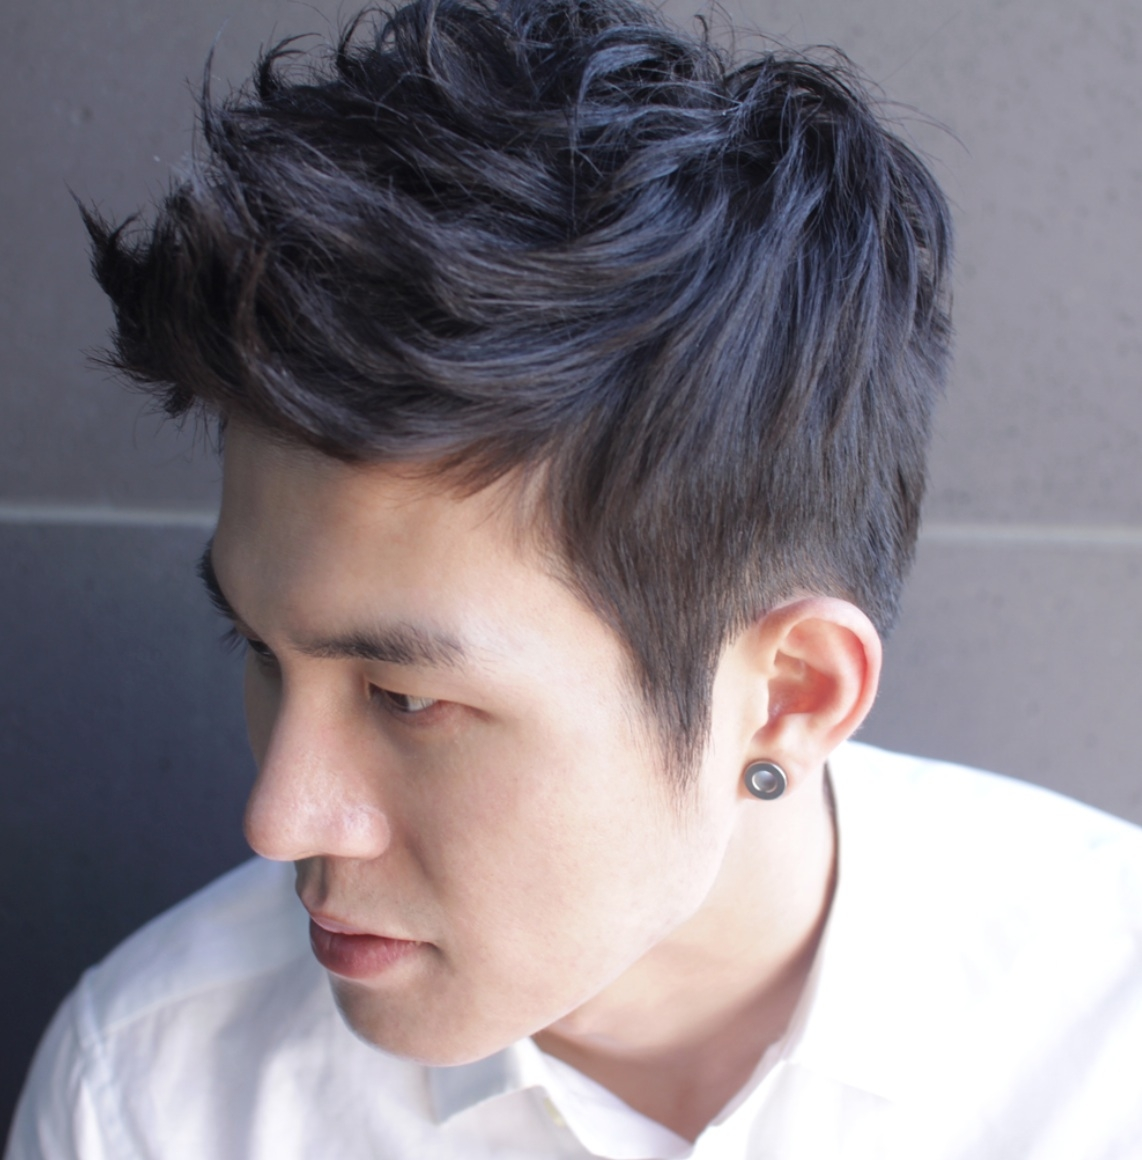 Asian Men Haircut Fashions Style And Hairstyle